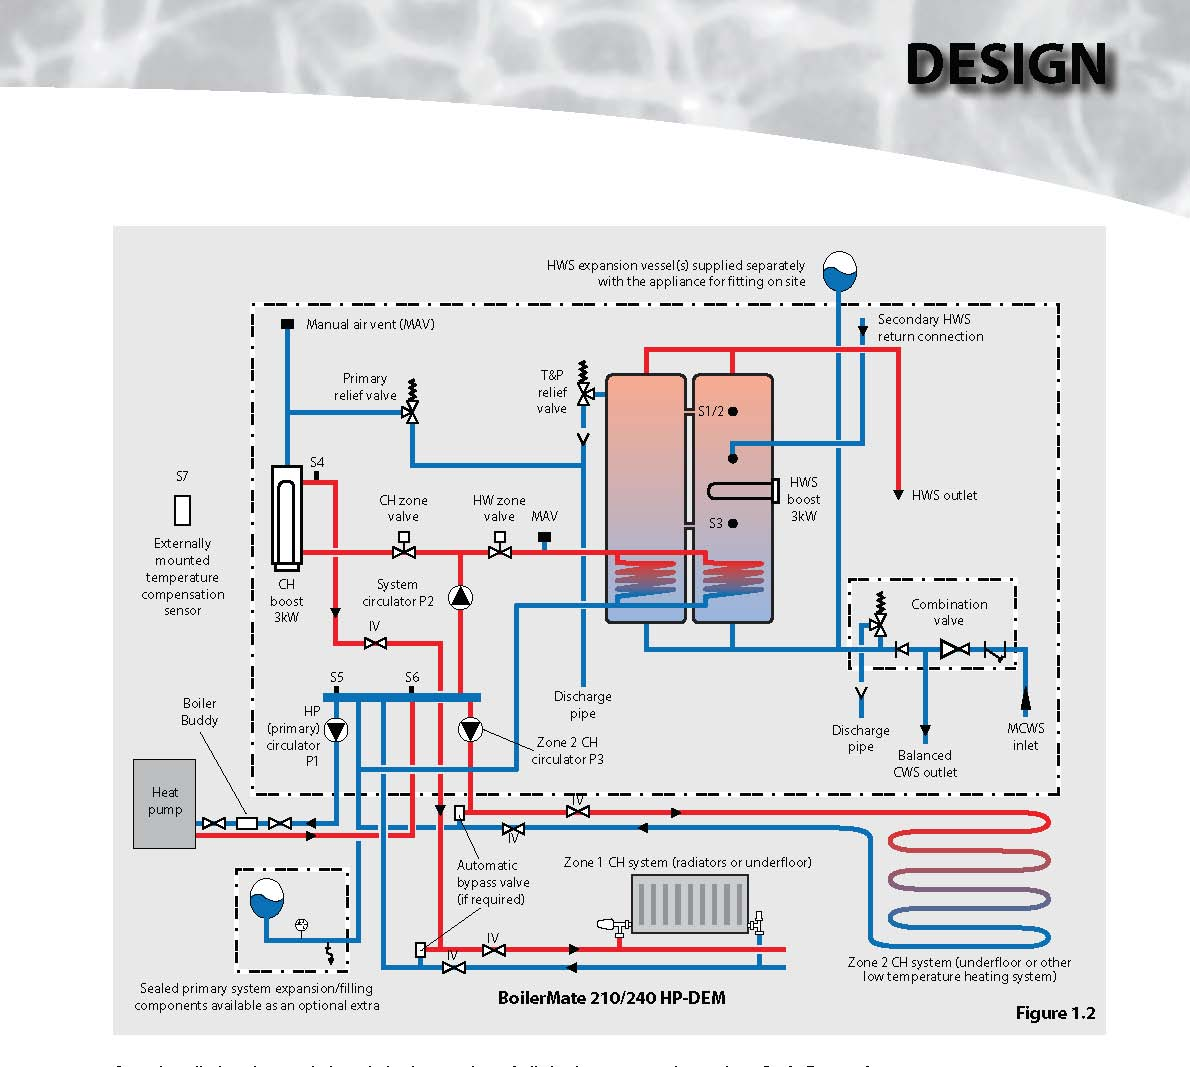 Boilermate A Class Hp Dem Big Buddy Heater Wiring Diagram Once Installed And Commissioned The Integration Of All Heat Pump Domestic